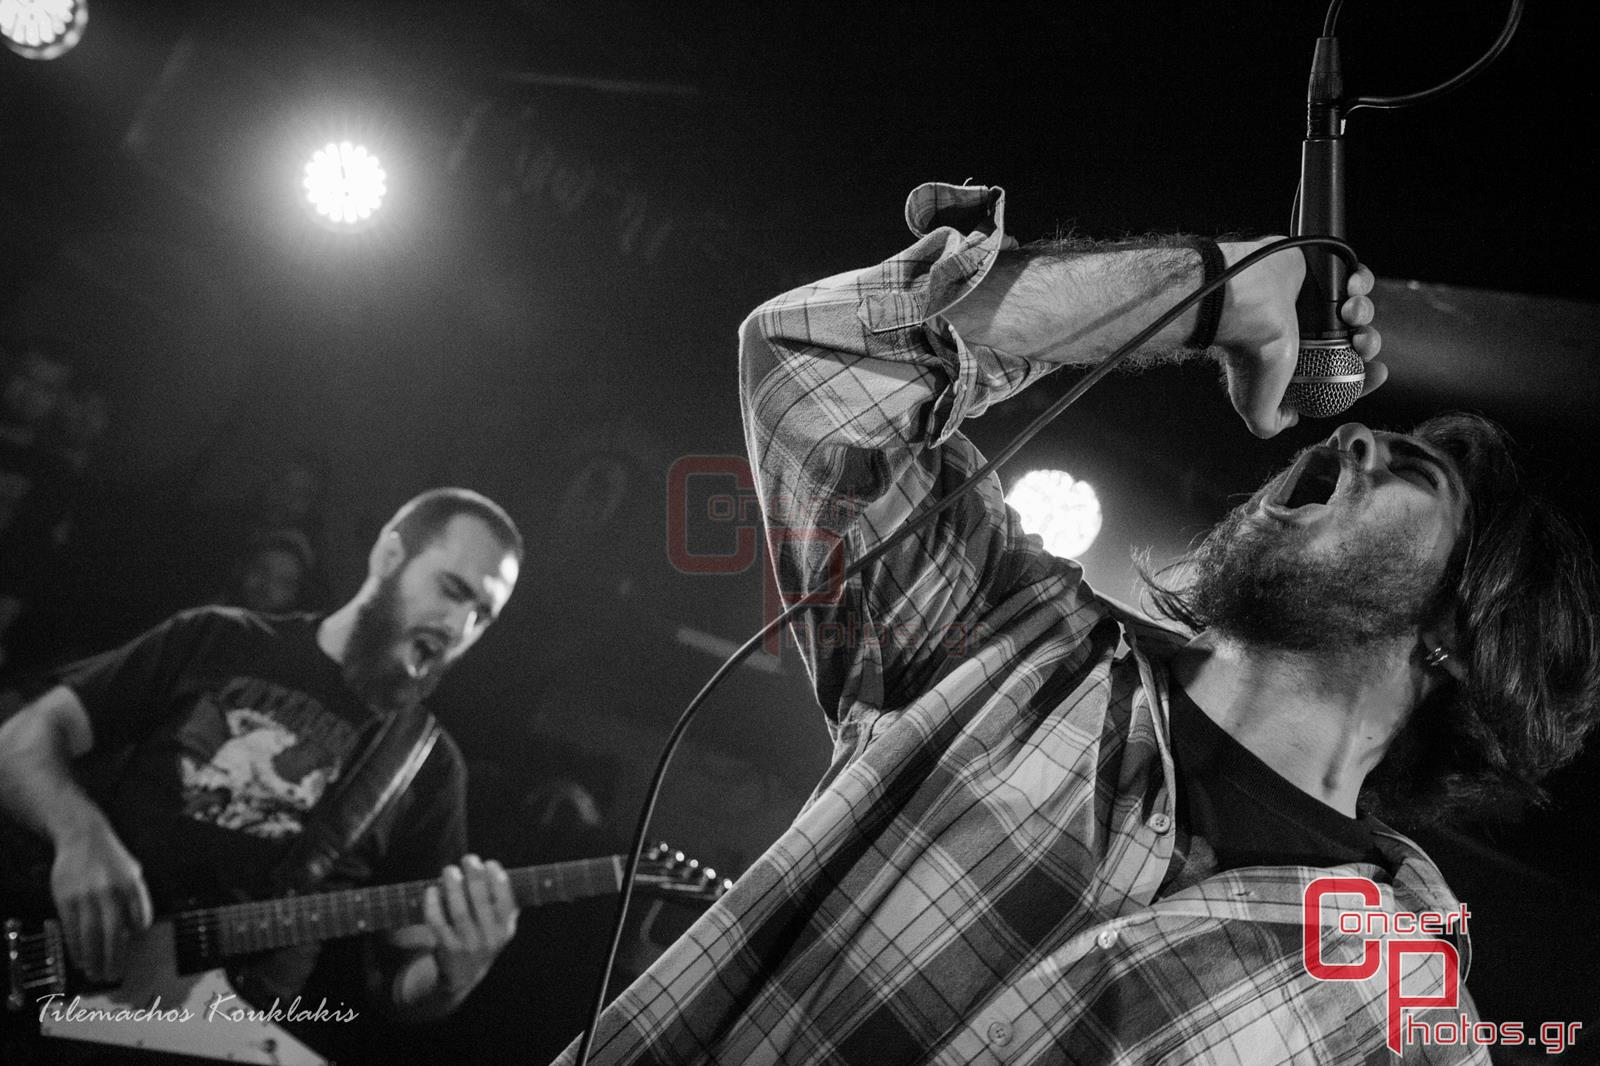 Nightstalker-Nightstalker AN Club photographer:  - concertphotos_-4